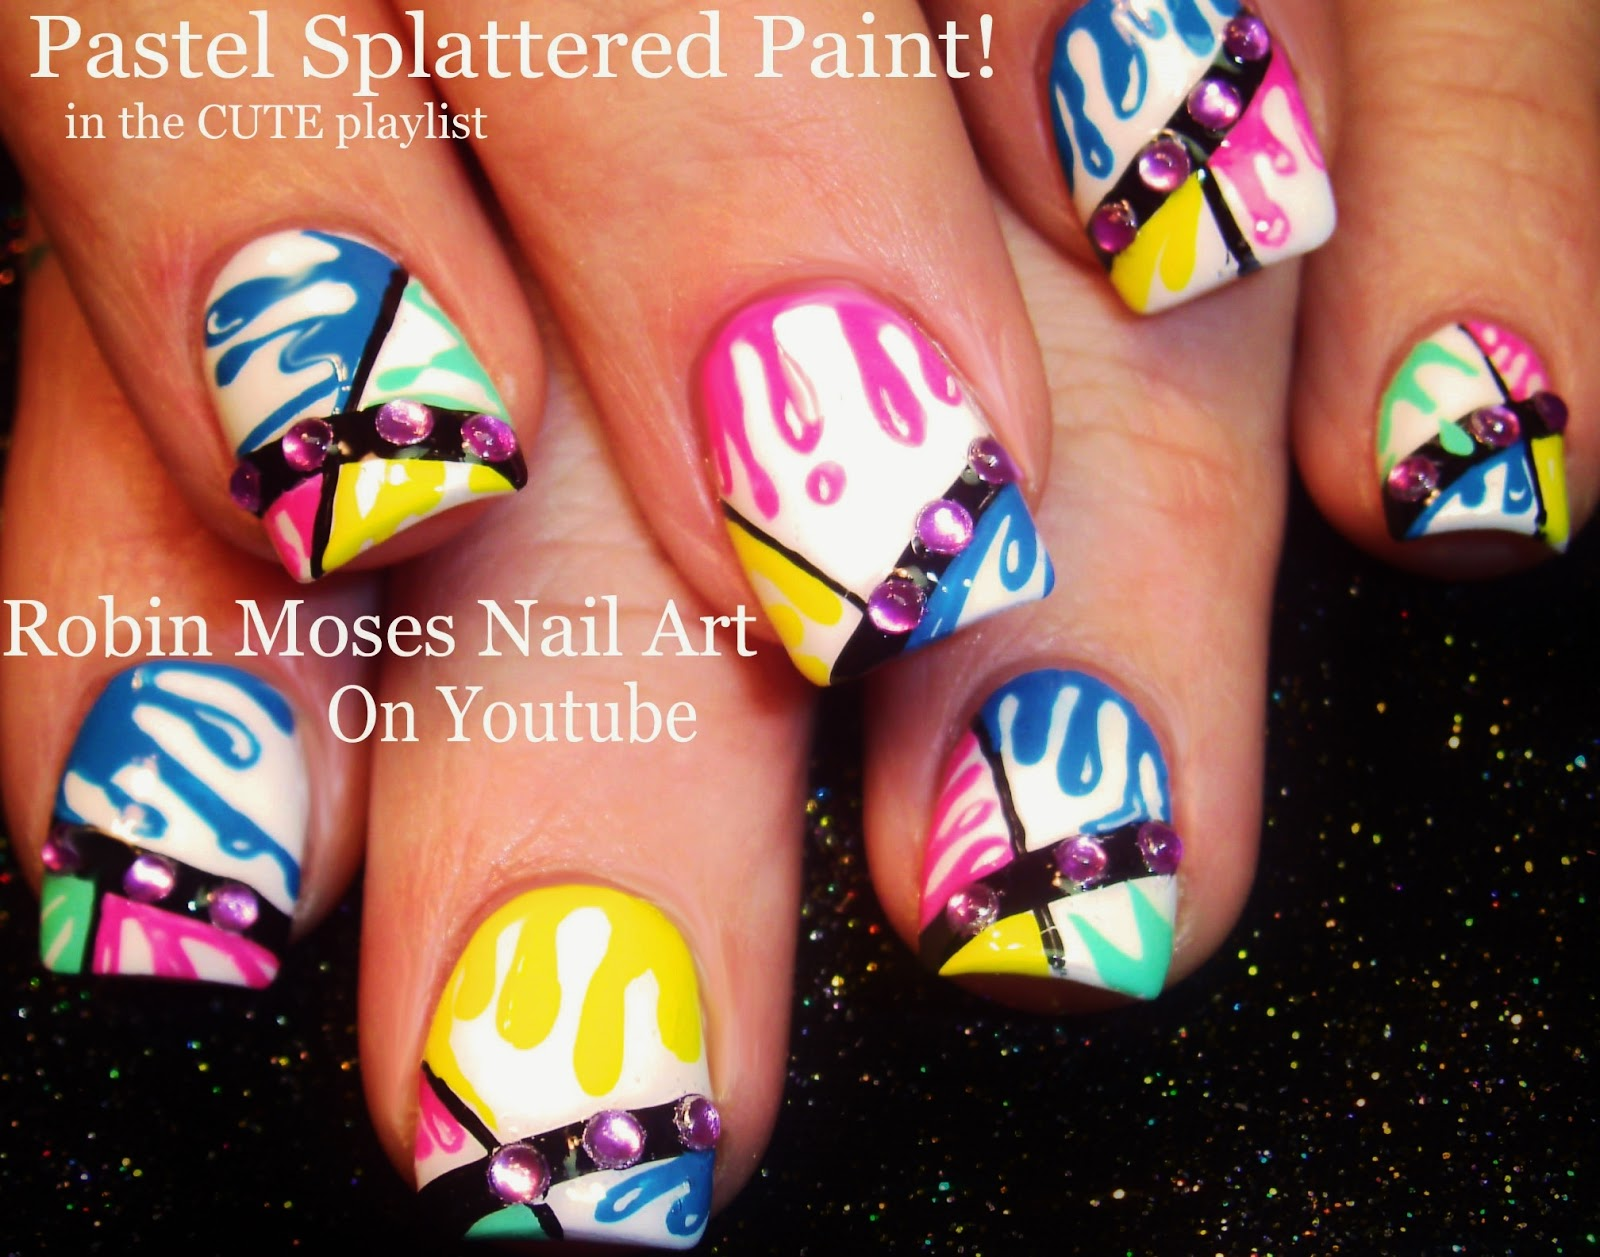 Robin moses nail art flower splatter paint with flowers black neon paint splatter design cute splatter nails splatter nails paint splatter nails prinsesfo Choice Image